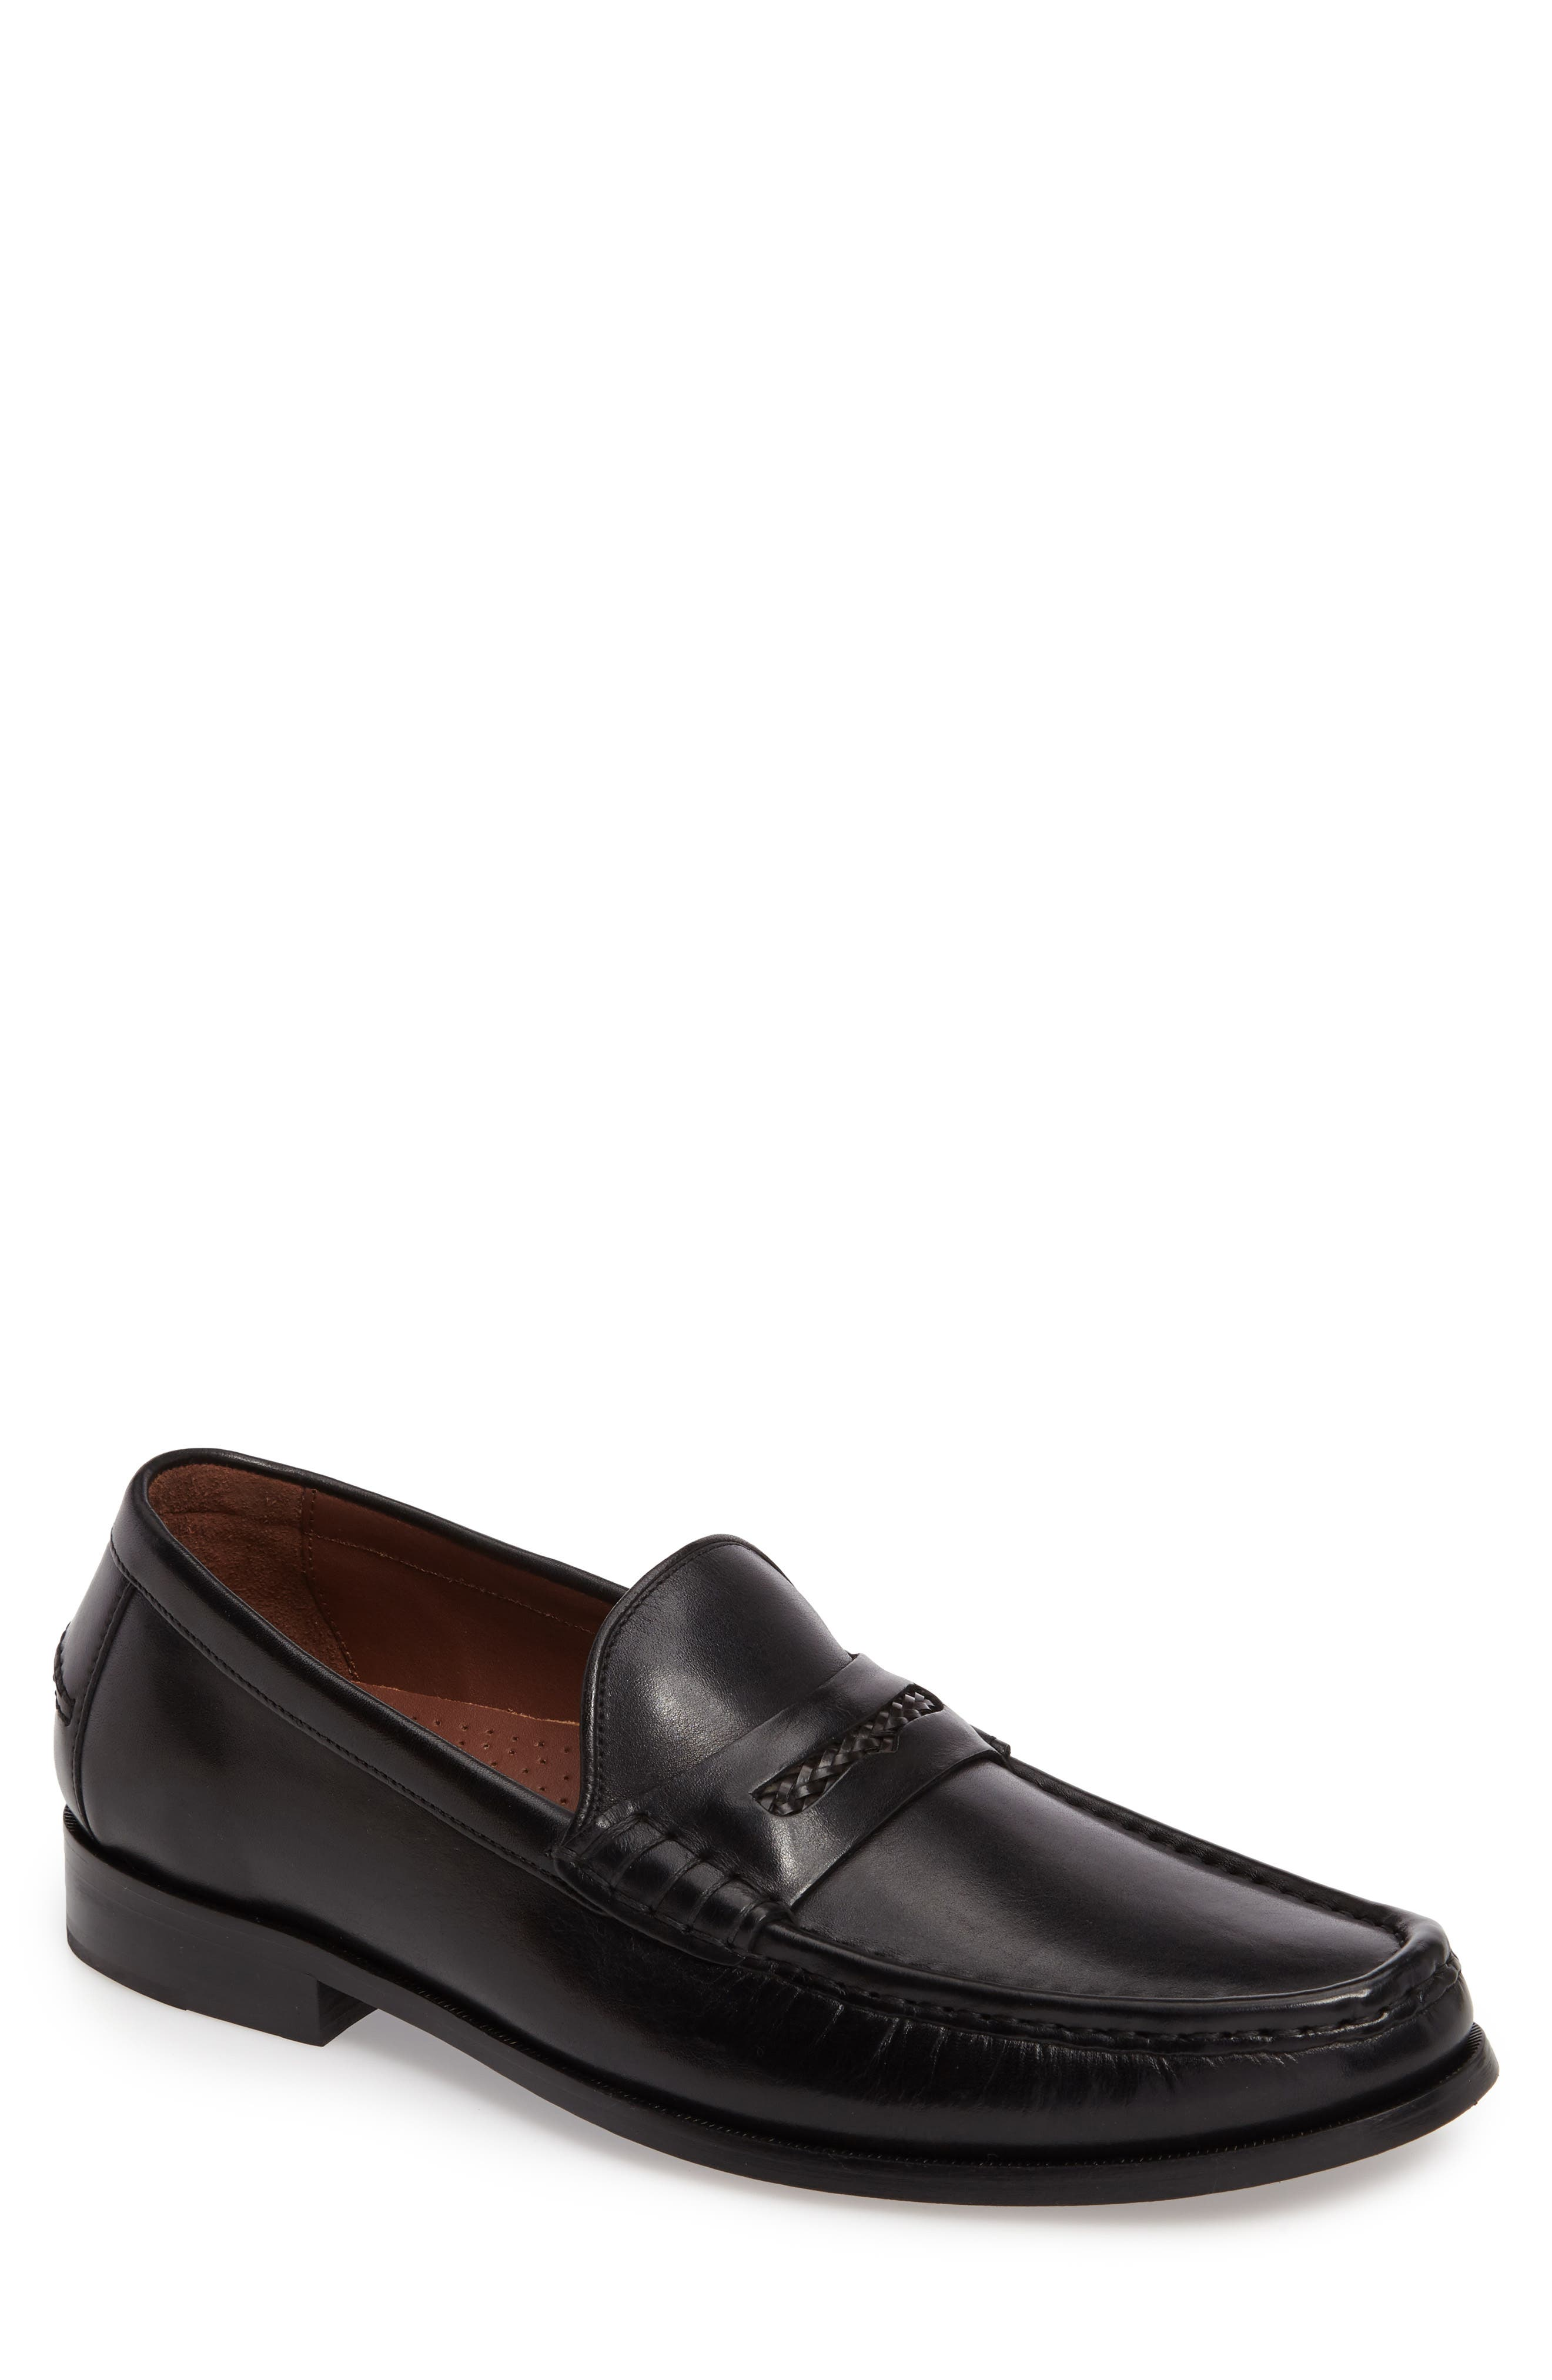 'Pinch Gotham' Penny Loafer,                             Main thumbnail 1, color,                             001